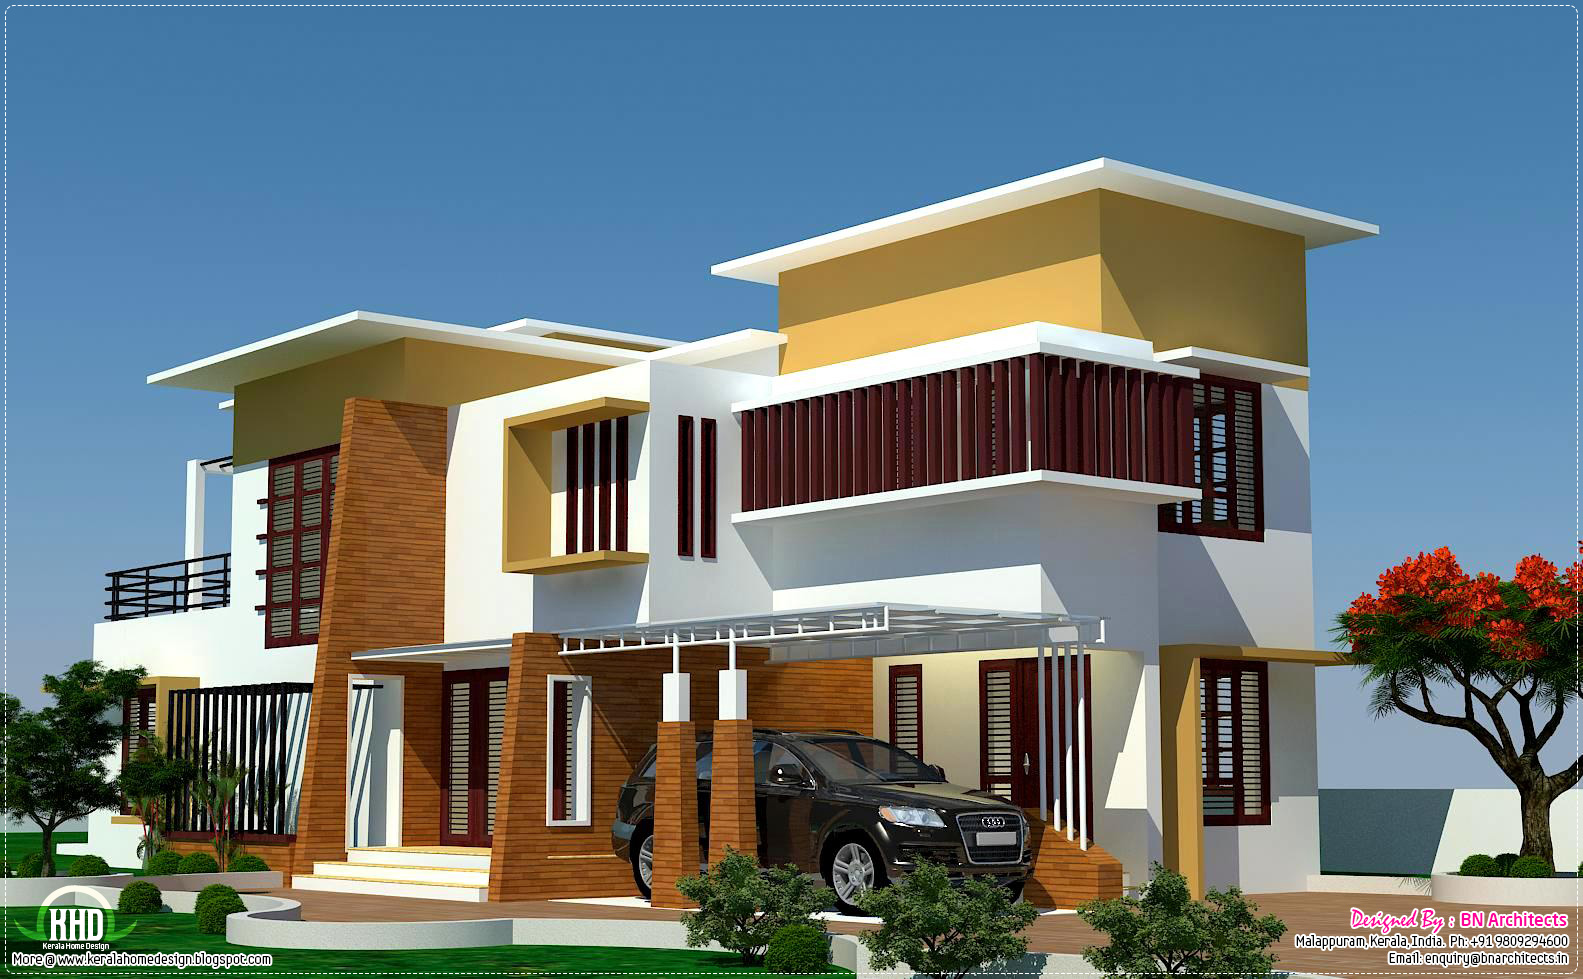 Villa House Plans Of 4 Bedroom Modern Villa Design House Design Plans